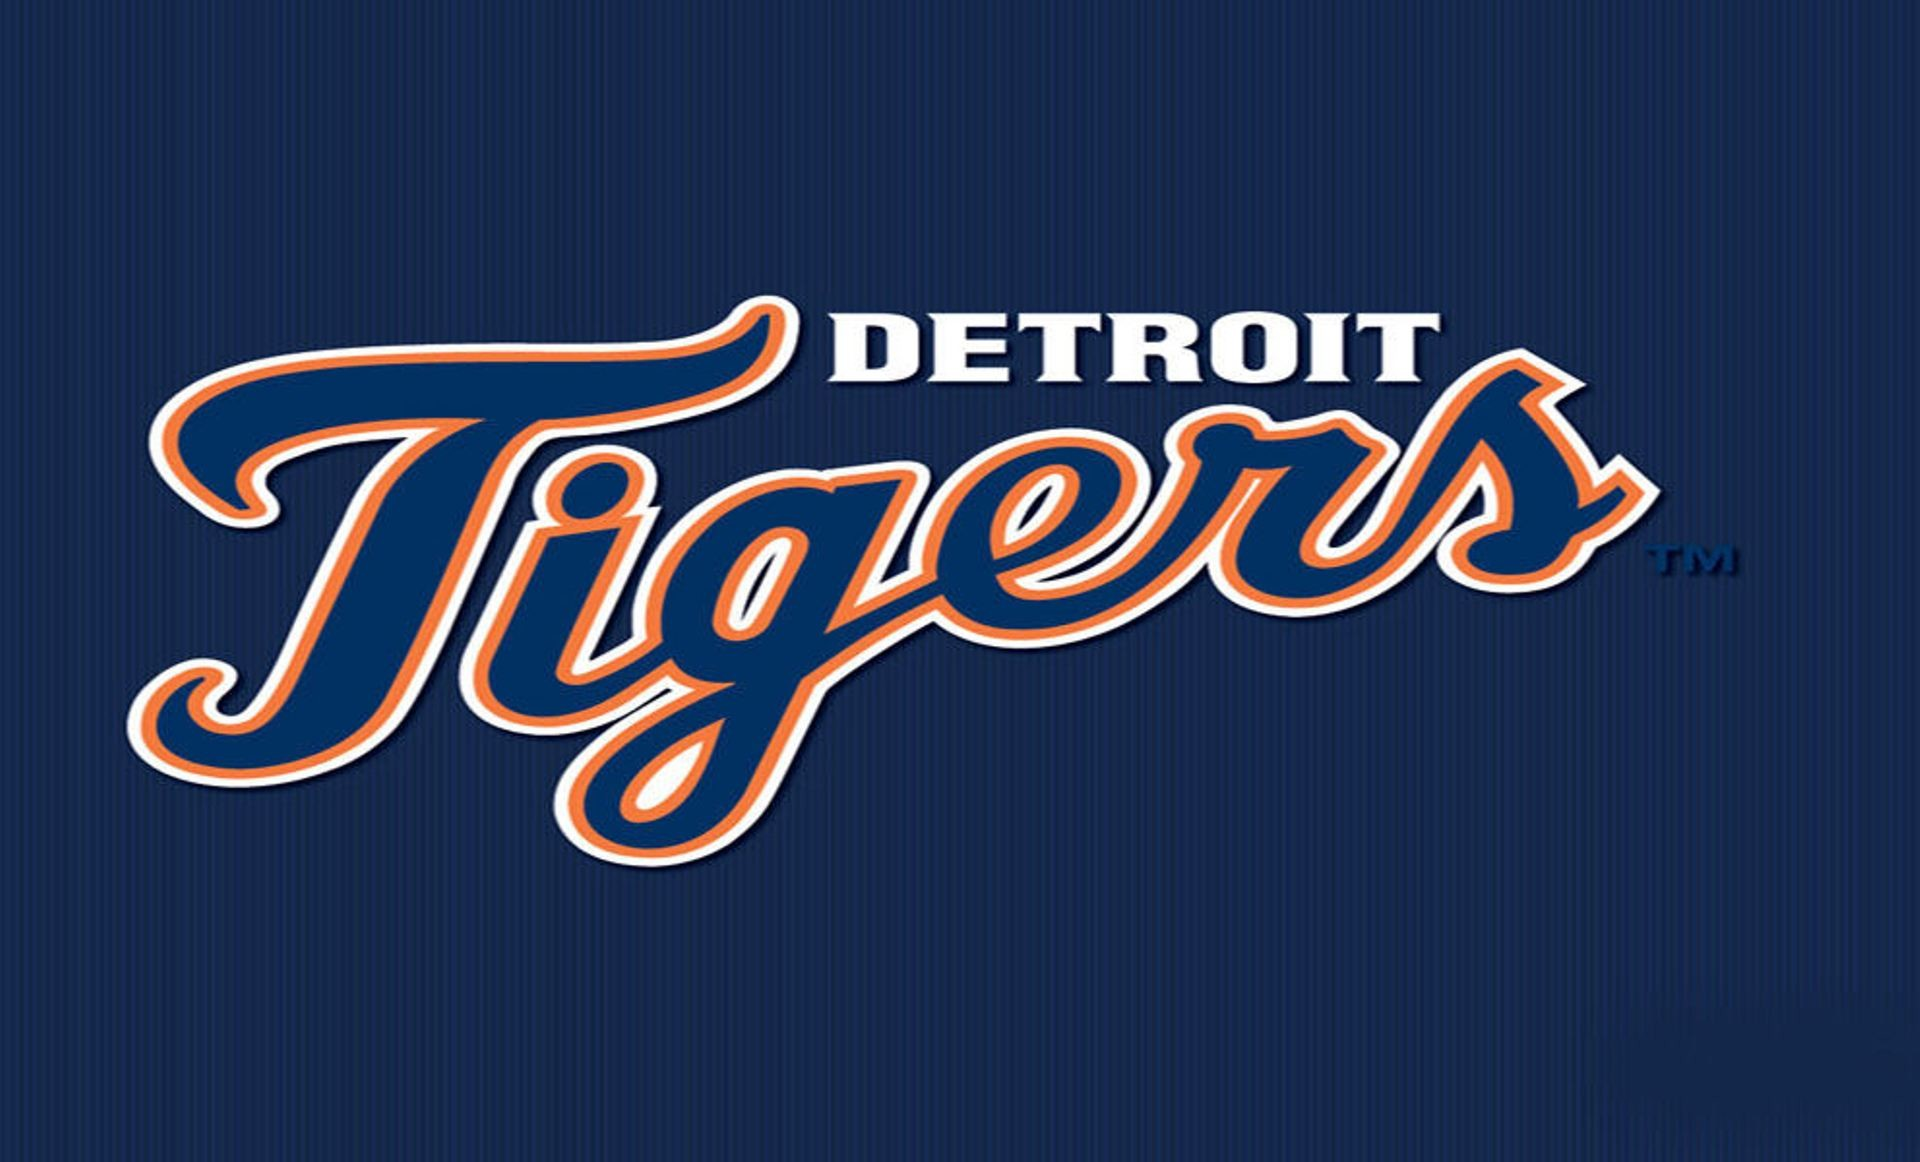 1920x1162 Detroit Tigers Wallpaper Collection 1920×1162 · Download · Want ...